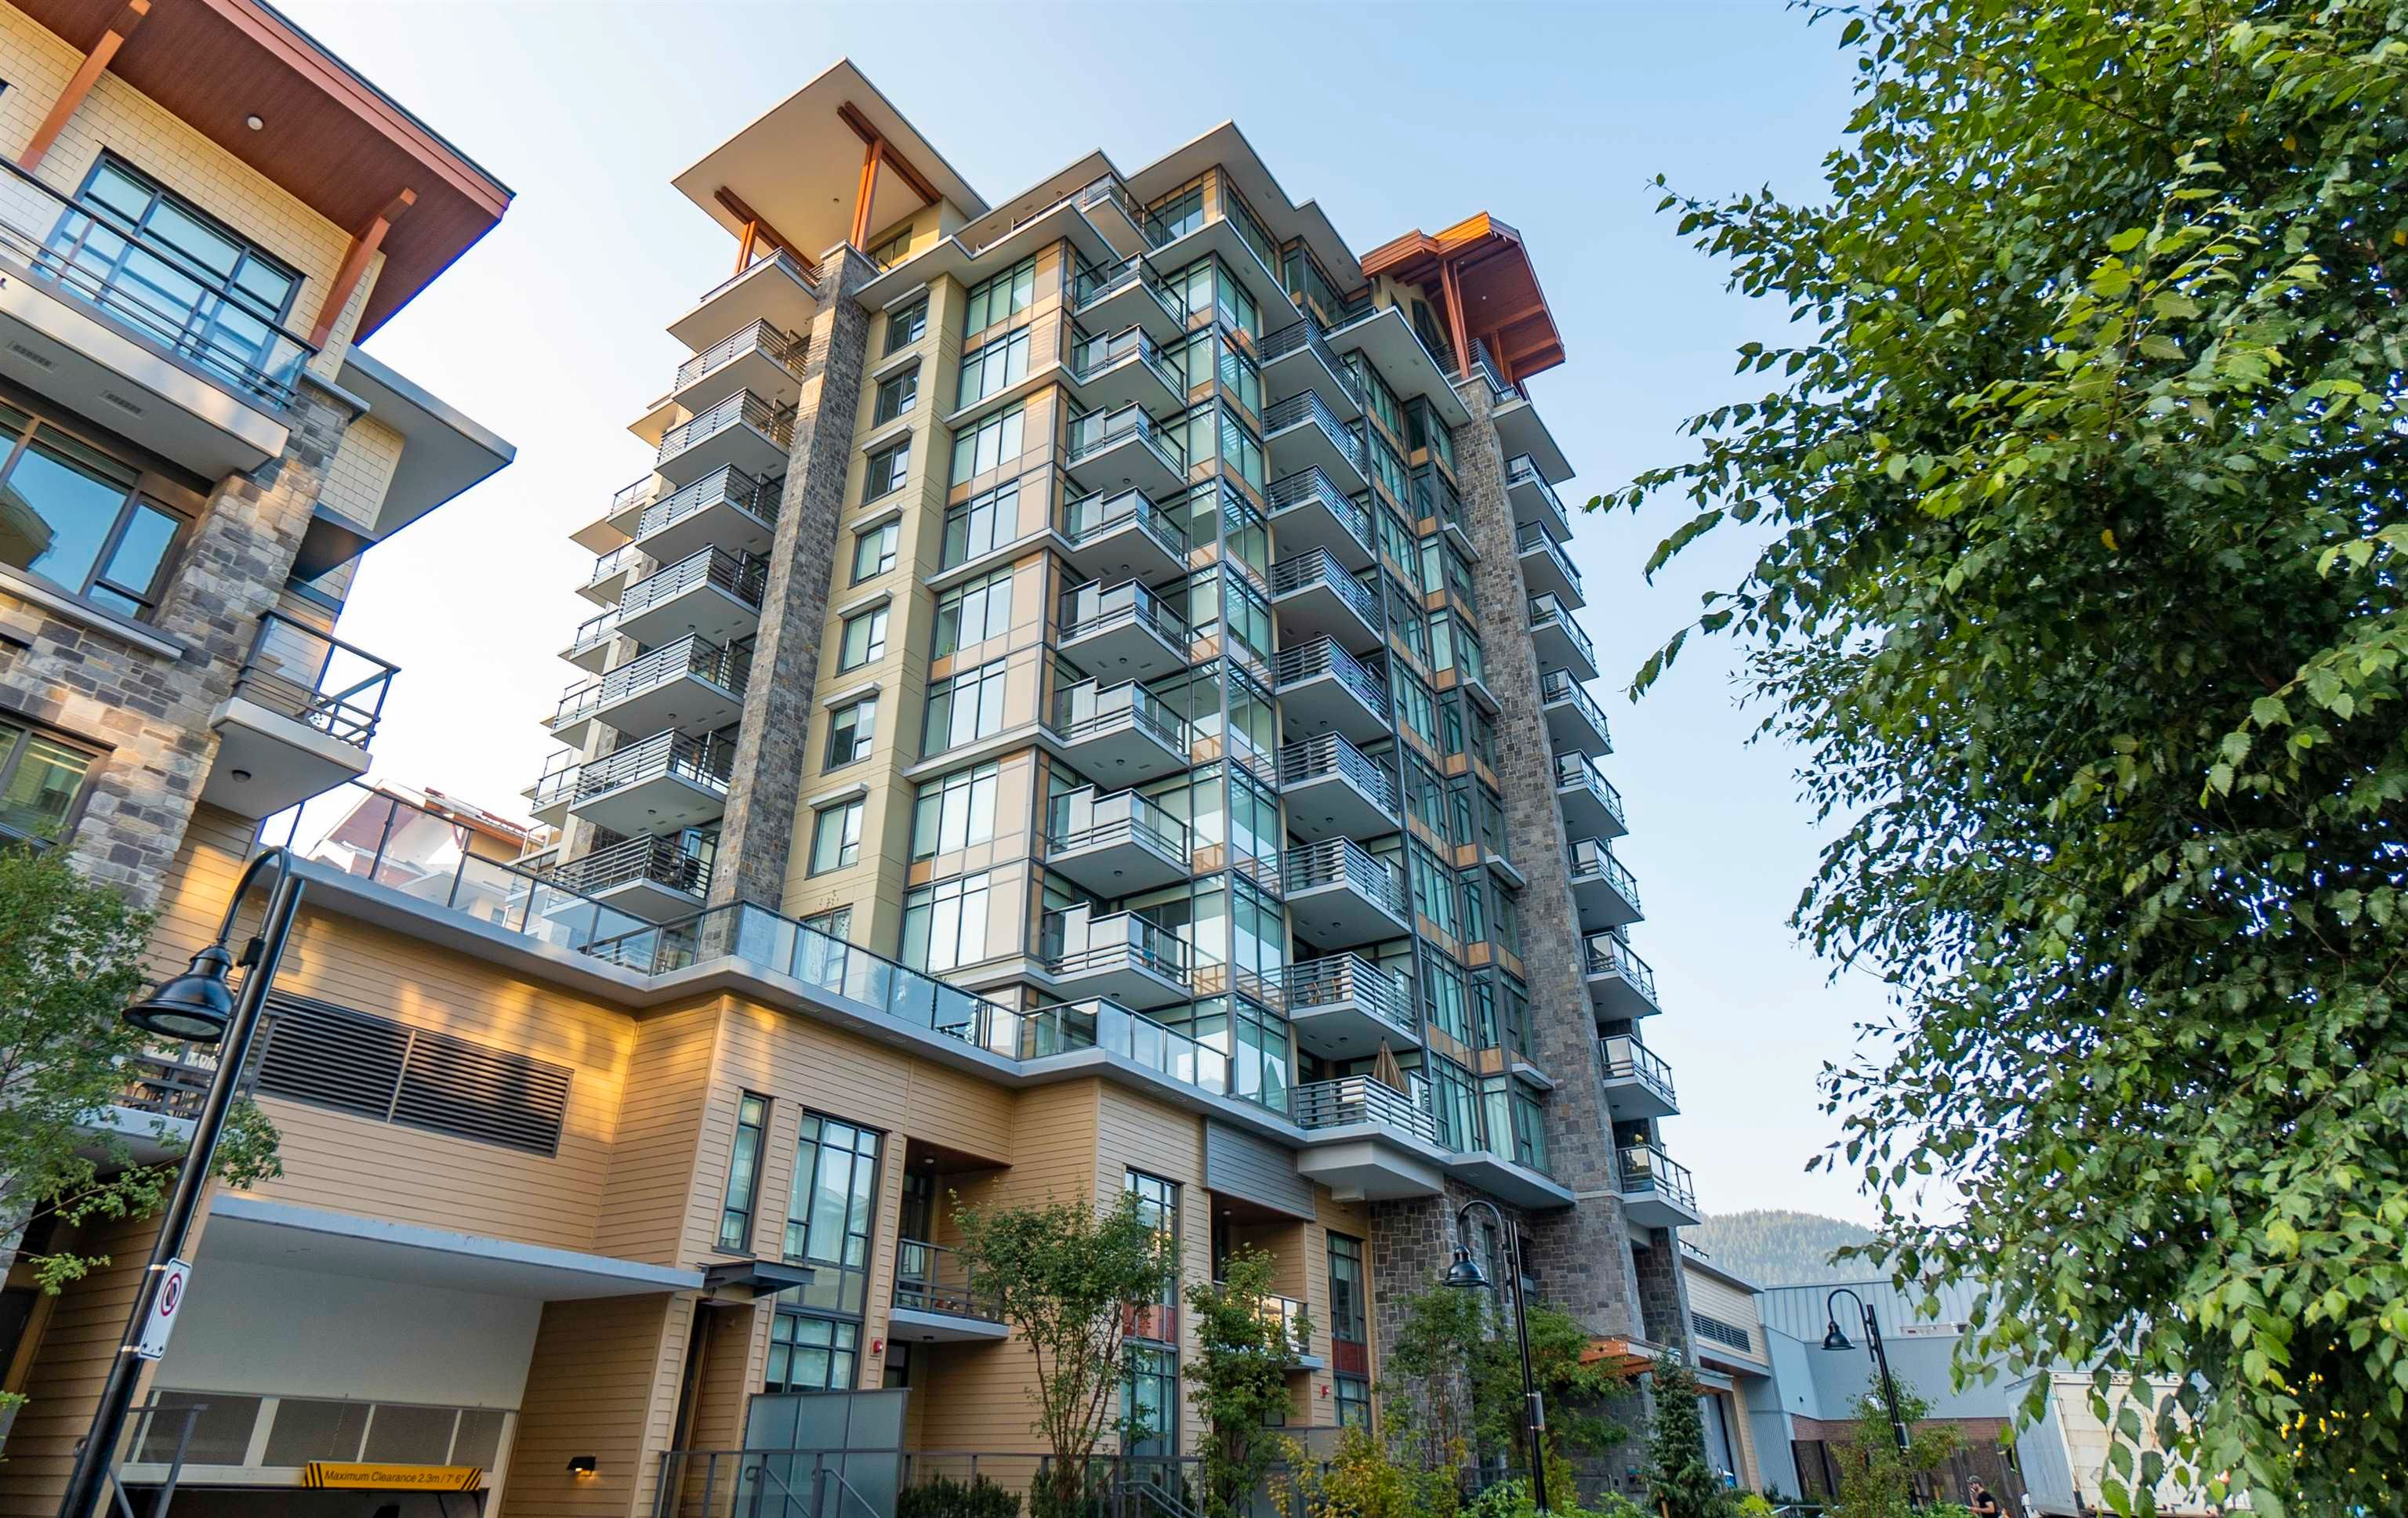 """Main Photo: 206 2785 LIBRARY Lane in North Vancouver: Lynn Valley Condo for sale in """"The Residences"""" : MLS®# R2625328"""